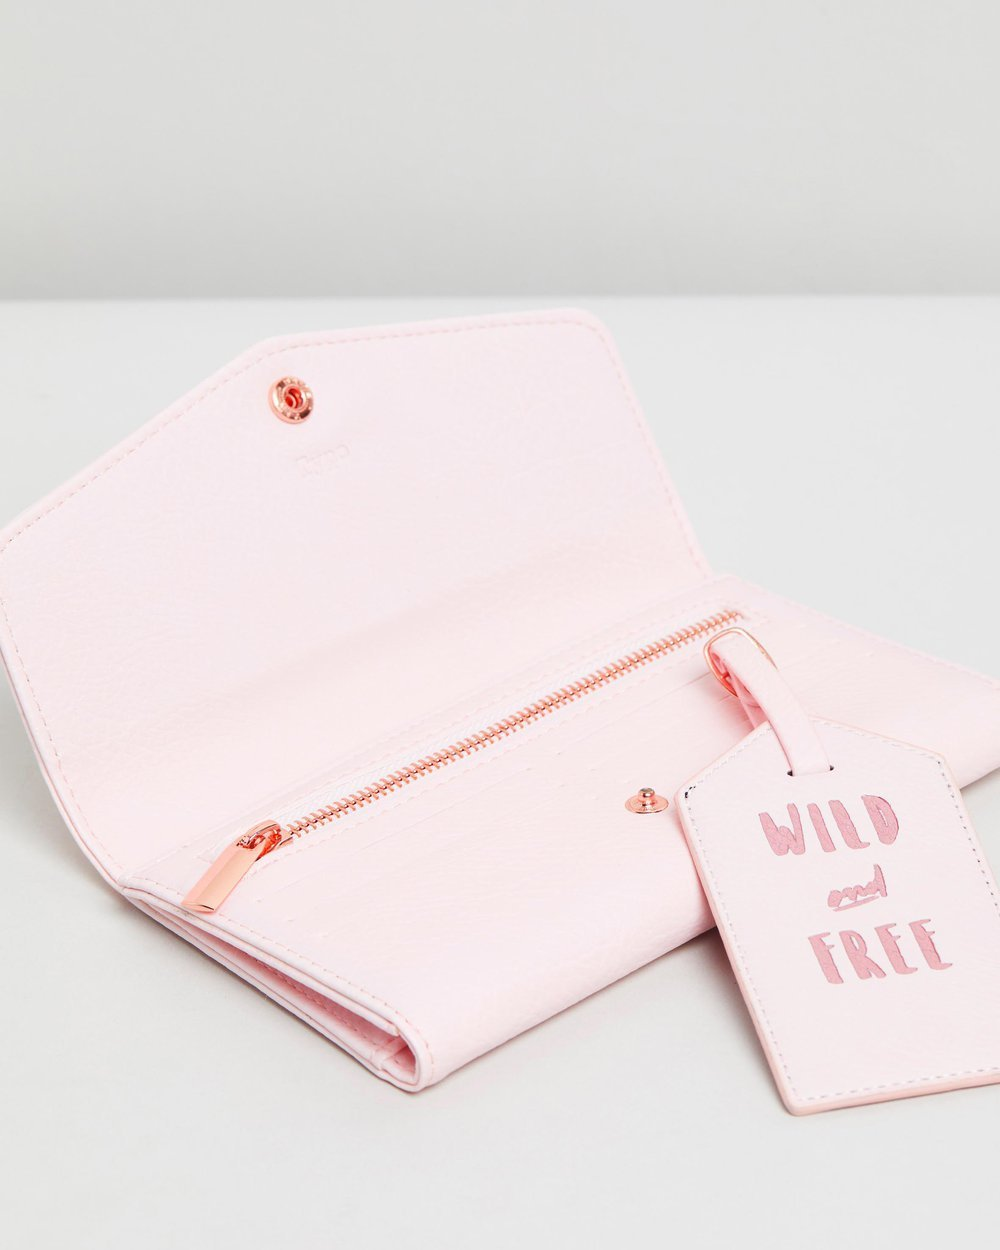 shop typo wallets & card holders